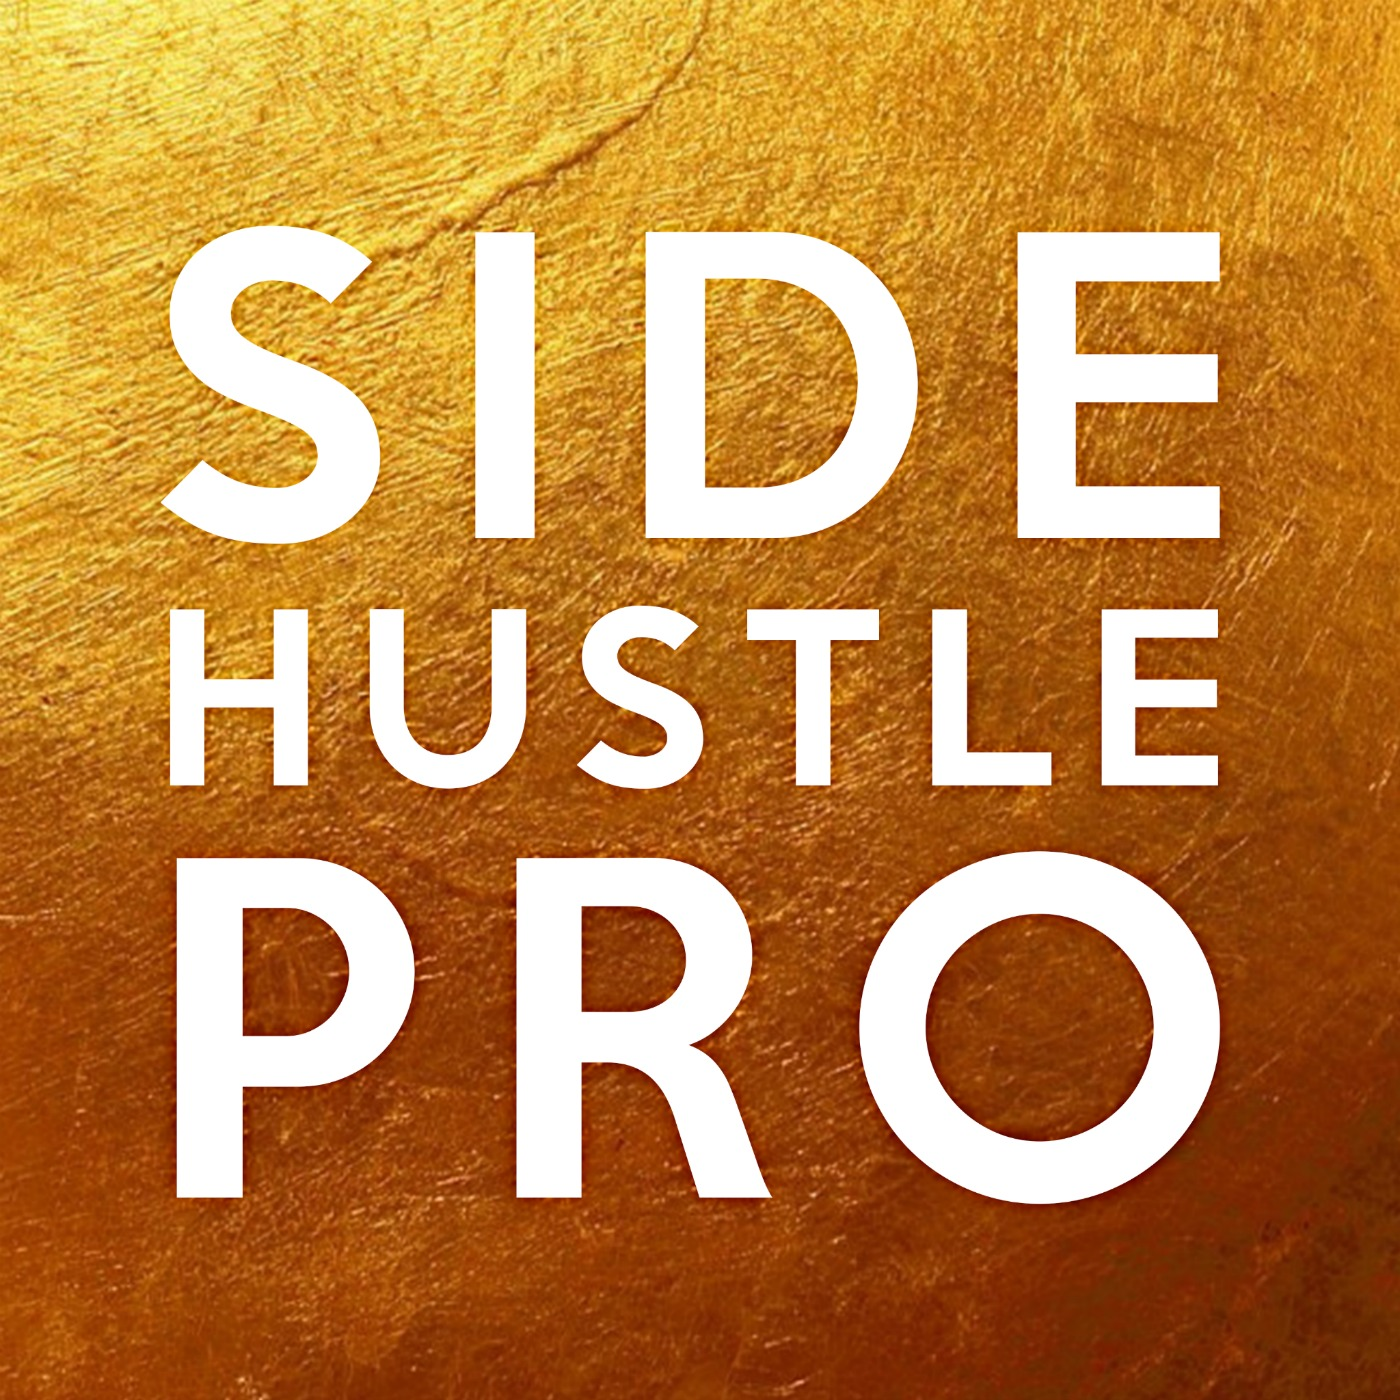 "Side Hustle Pro    Side Hustle Pro spotlights bold black women entrepreneurs who have scaled from side hustle to profitable business. Join Nicaila Matthews Okome for your weekly installment of Side Hustle Pro and learn actionable strategies to start small and get going–wherever and whoever you are. Side Hustle Pro features interviews with inspiring black women entrepreneurs like Venture Capitalist Stefanie Thomas, named a ""Voice of Black Women VCs"" by Fast Company, Award-winning financial educator and best-selling author Tiffany ""The Budgetnista"" Aliche, and entrepreneur, speaker and goal ­achievement specialist Courtney Sanders, the Founder of Think and Grow Chick, LLC."